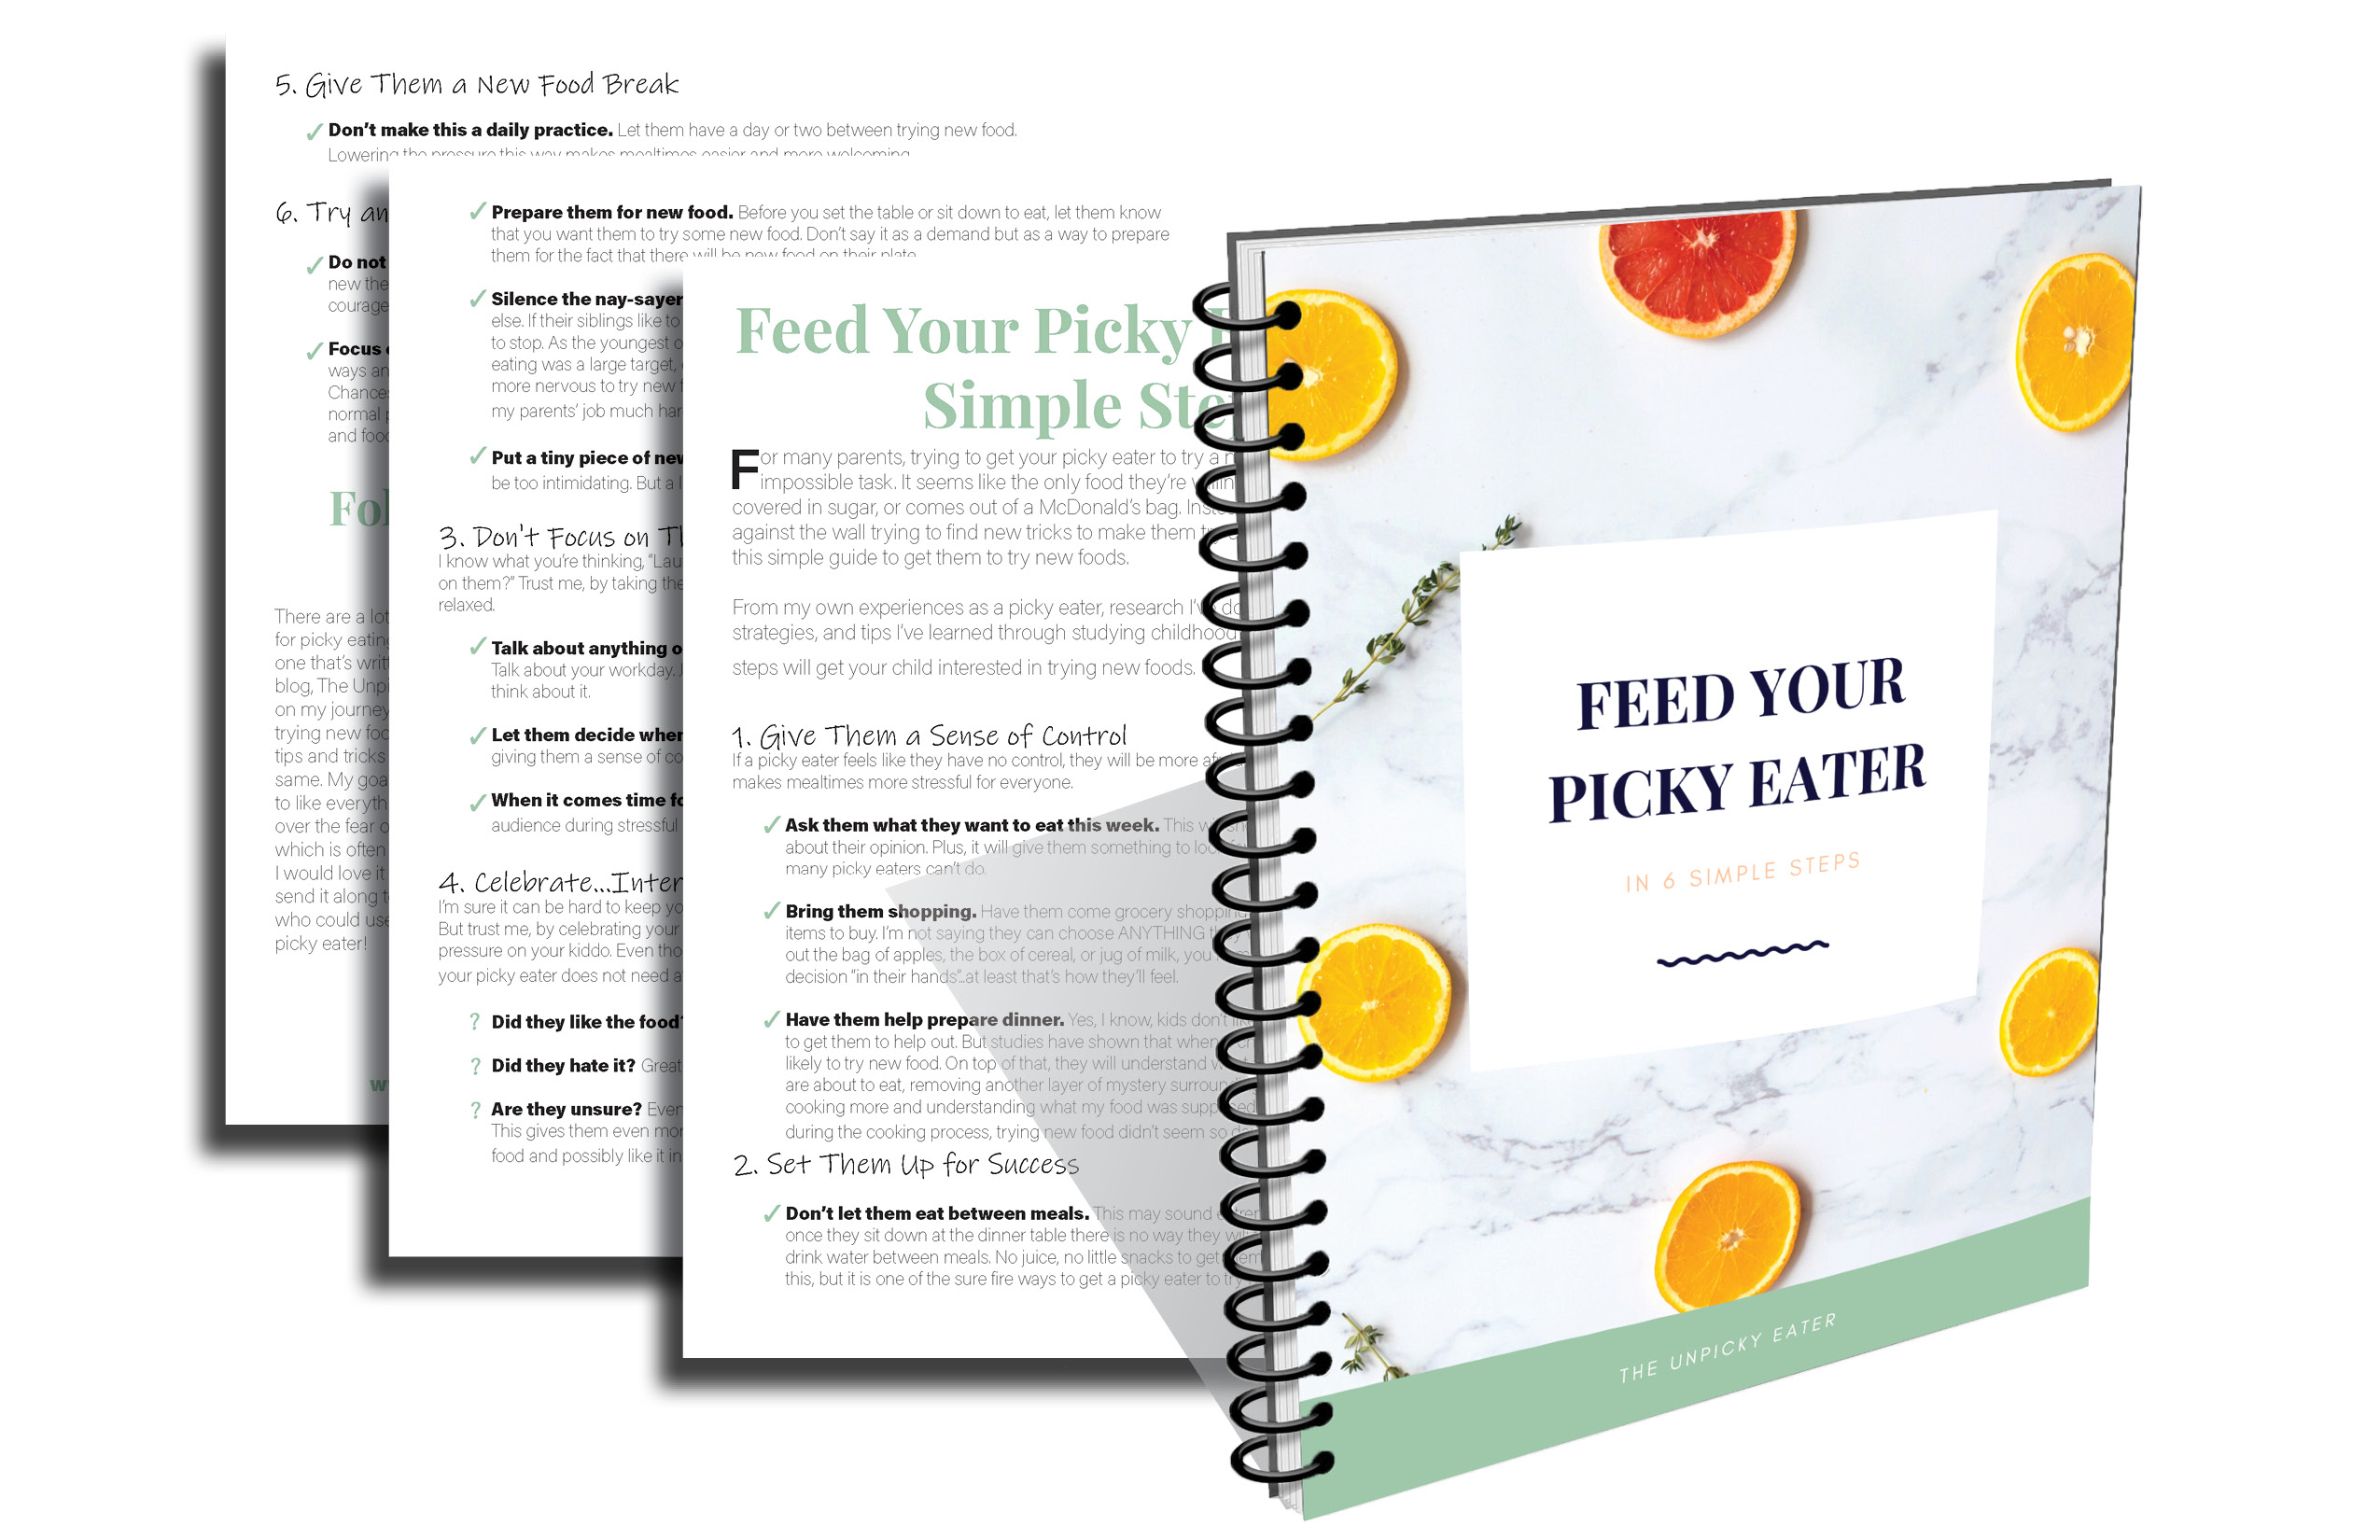 Feed Your Picky Eater in 6 Simple Steps